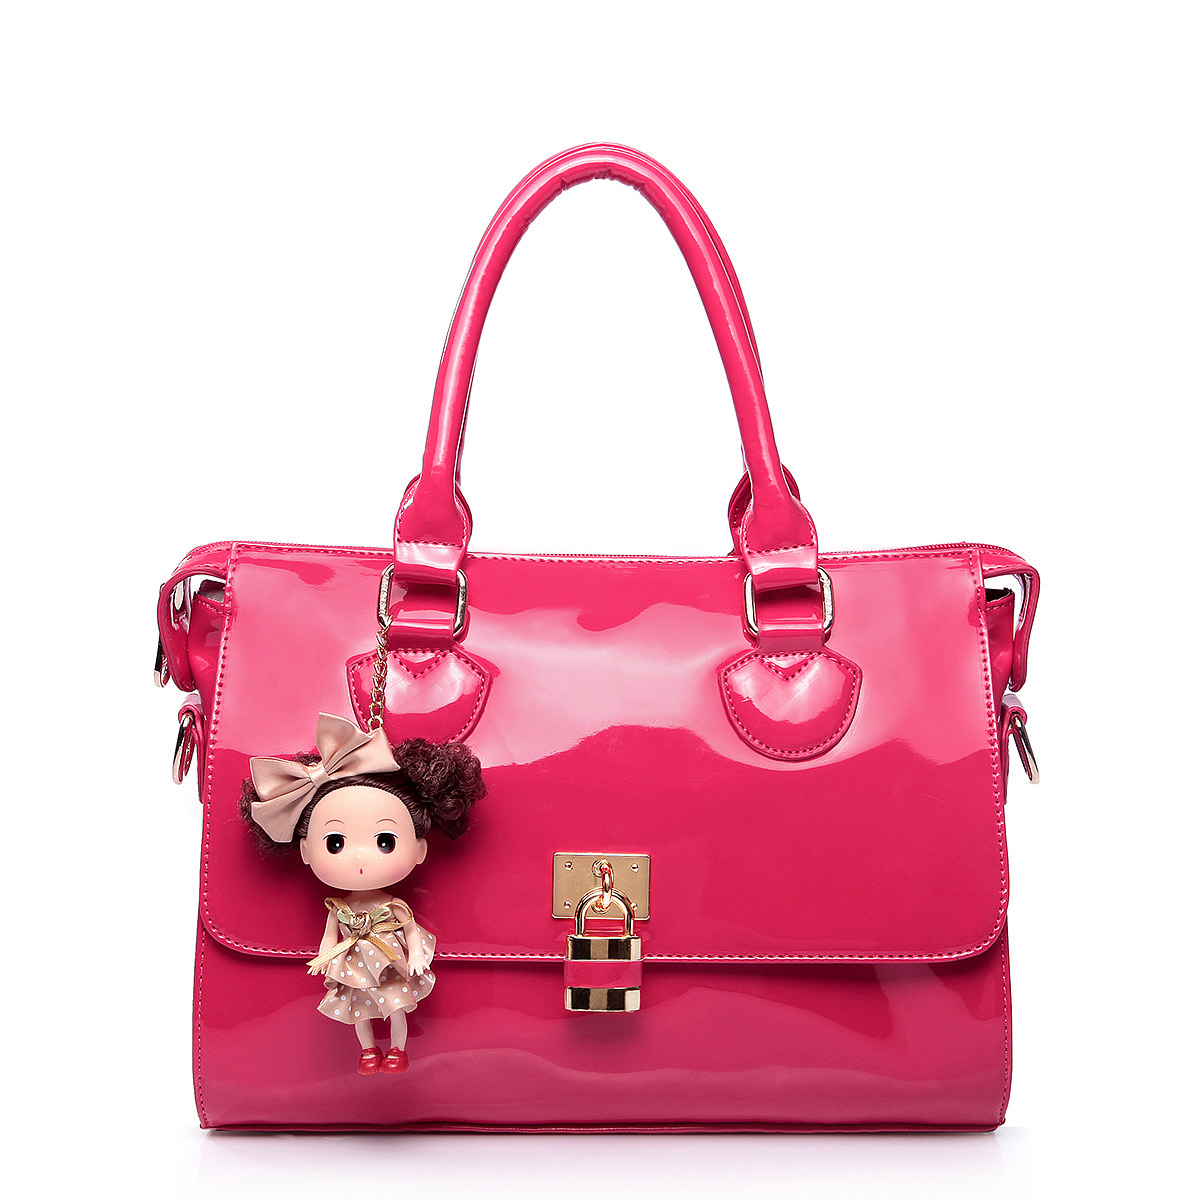 hand bags for girls - photo #43